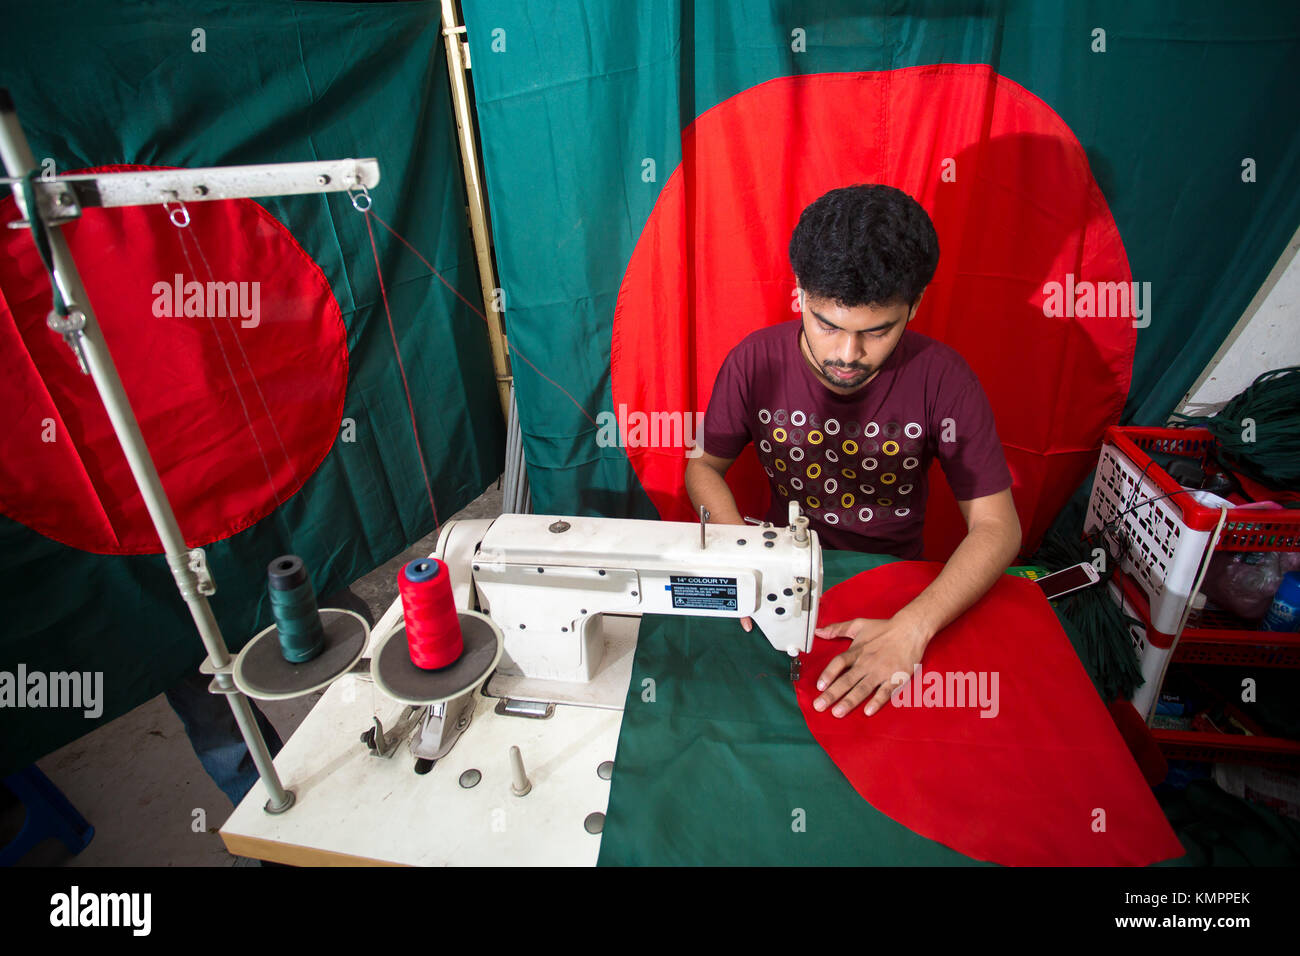 Dhaka, Bangladesh. 09th Dec, 2017. Victory day is a national holiday in Bangladesh celebrated on December 16 to - Stock Image